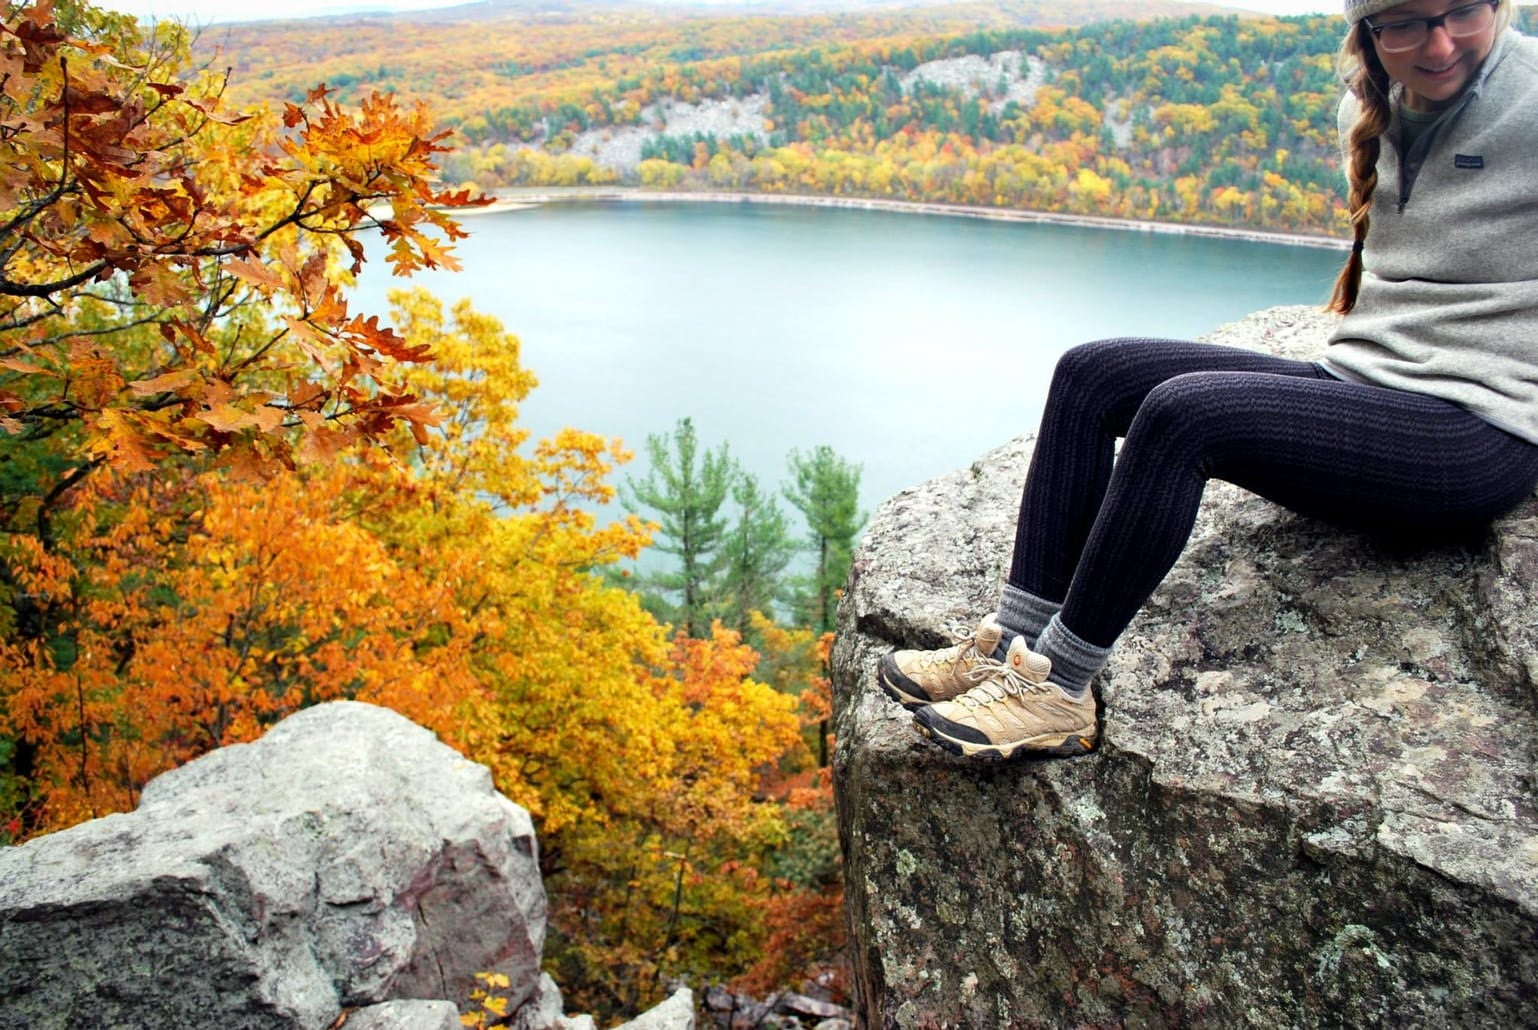 Girl in hiking clothing posing in front of view of blue lake and fall foliage.